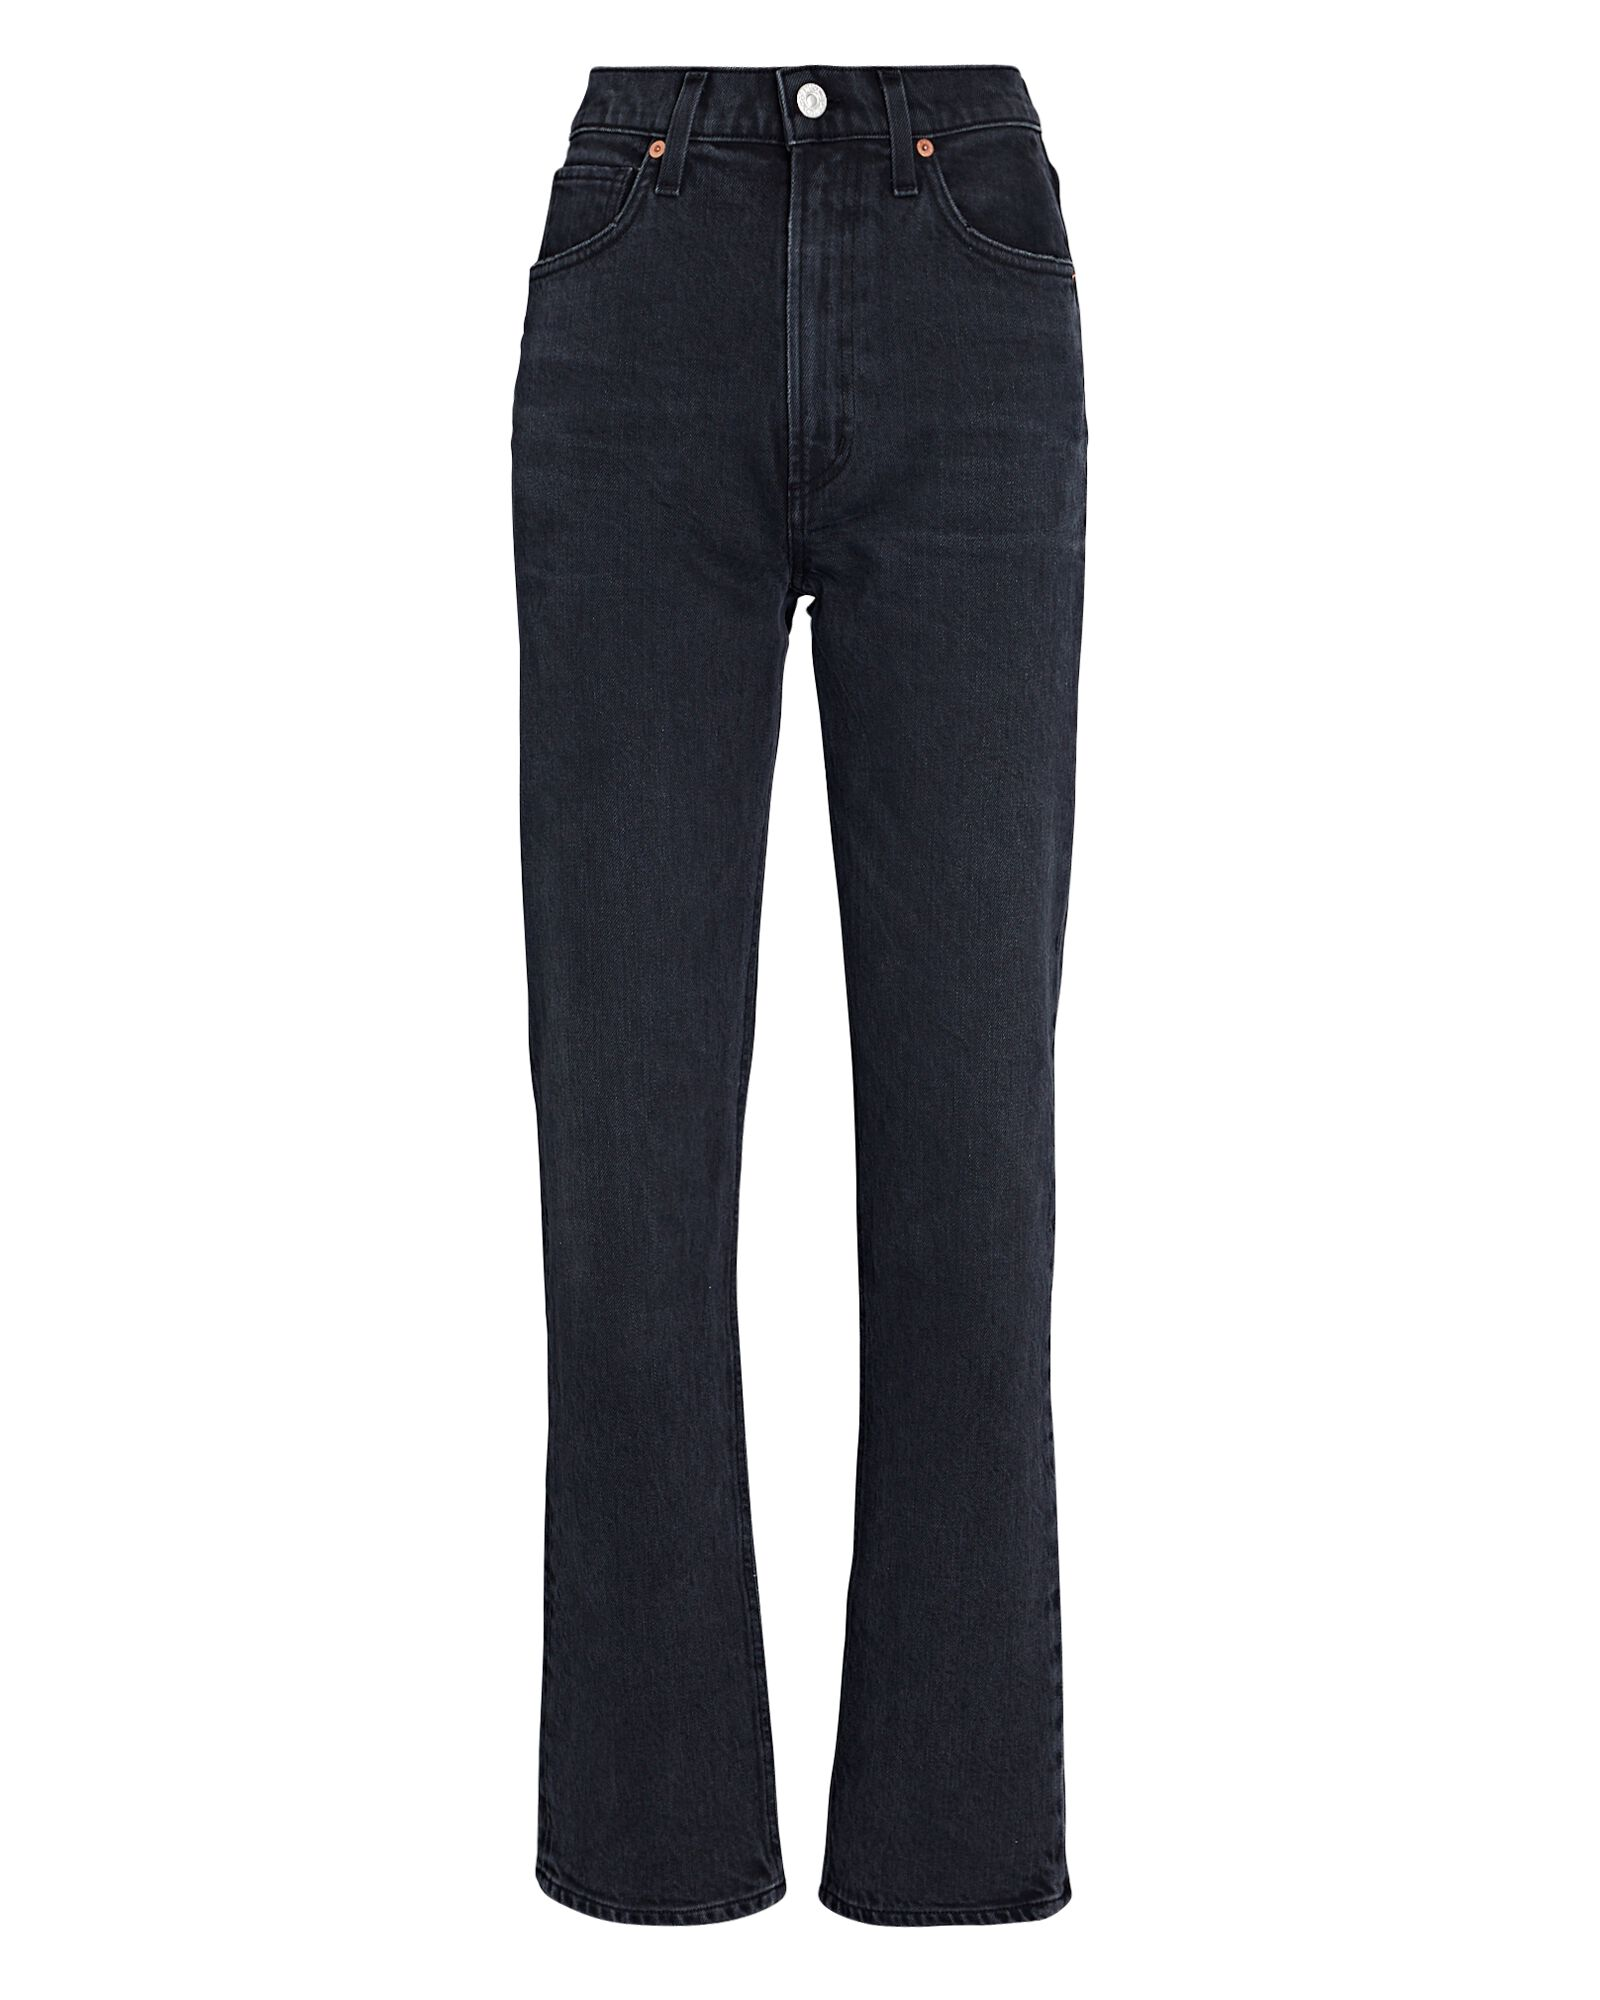 Daphne High-Rise Stovepipe Jeans, HALO, hi-res